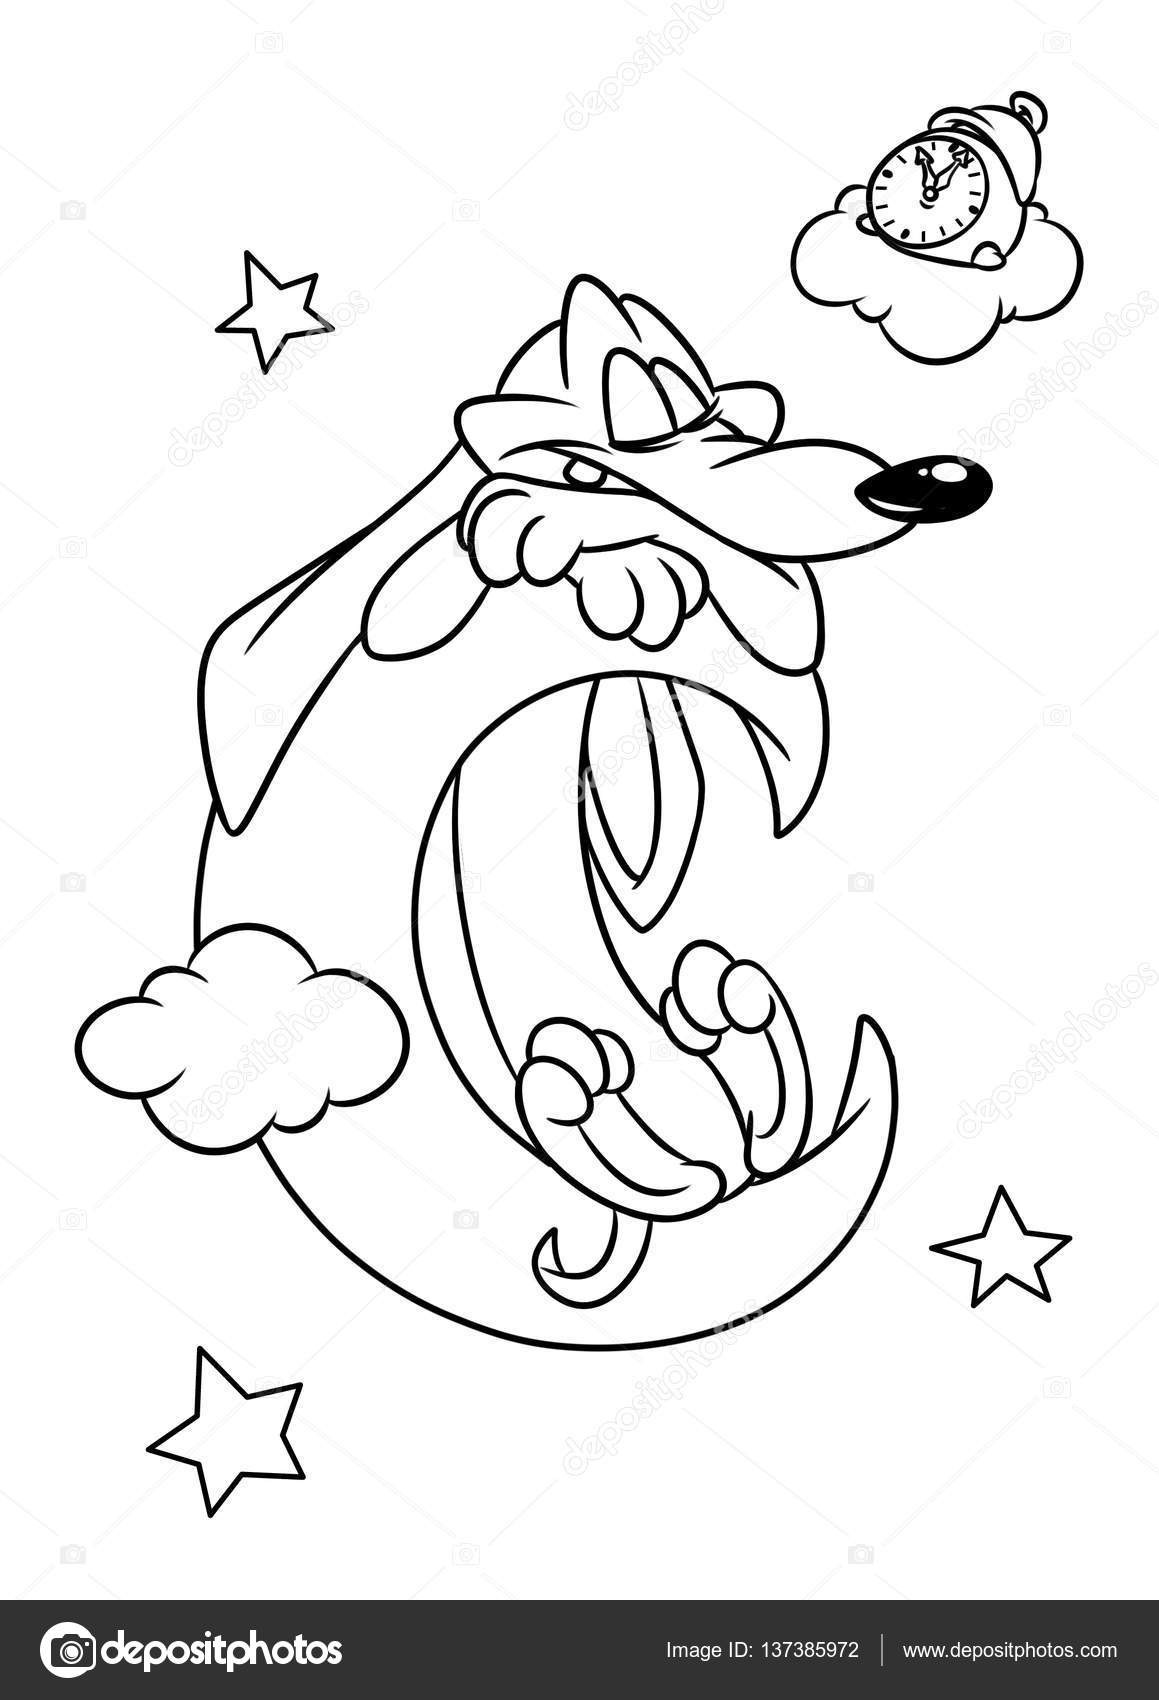 dachshund coloring pictures dachshund dog coloring page free printable coloring pages coloring dachshund pictures